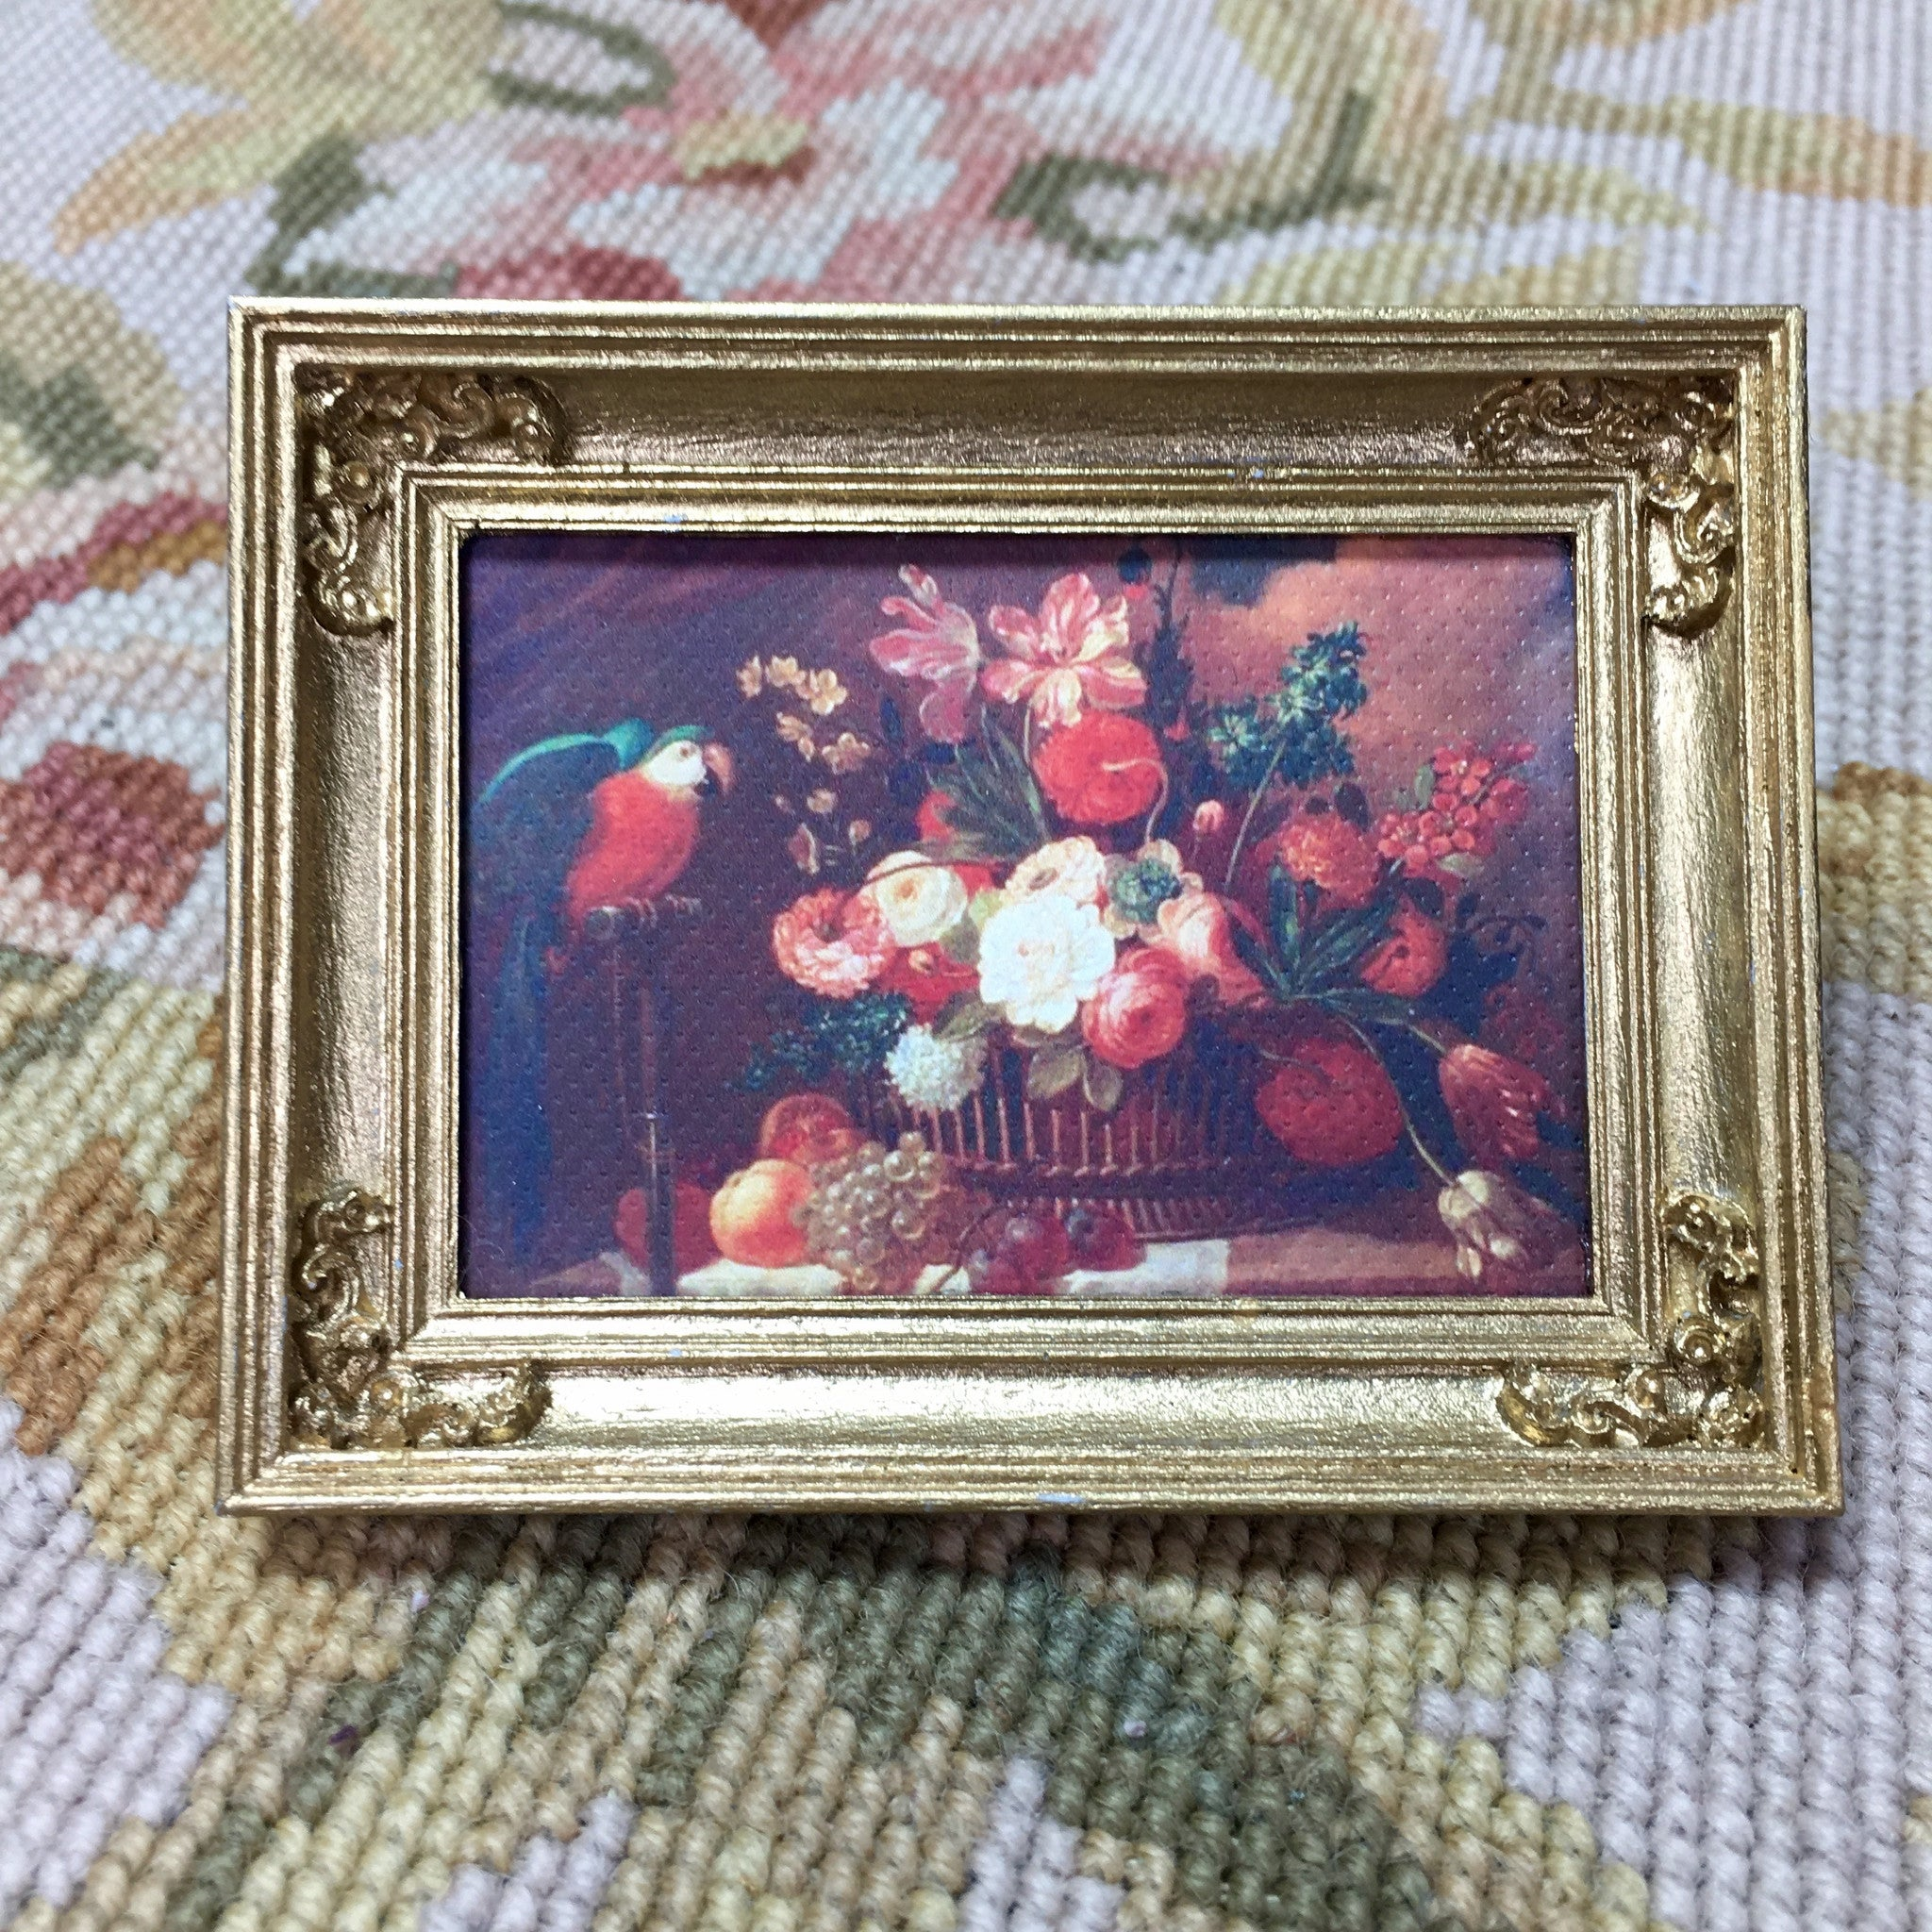 Painting Picture Medium Bird & Flowers 1:12 Dollhouse Miniature Art